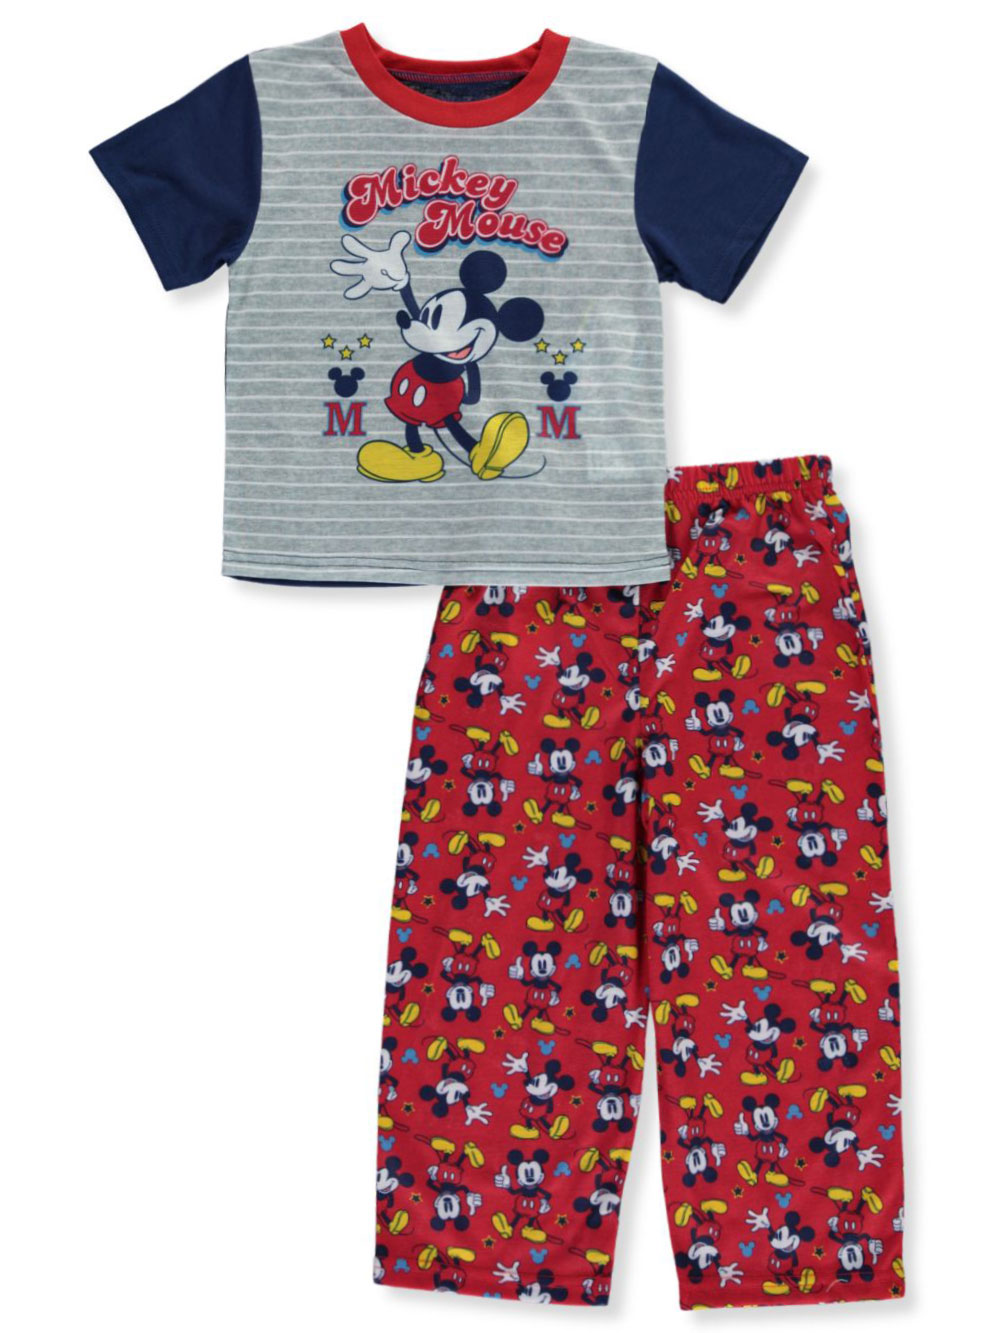 Boys Gray/red Sleepwear